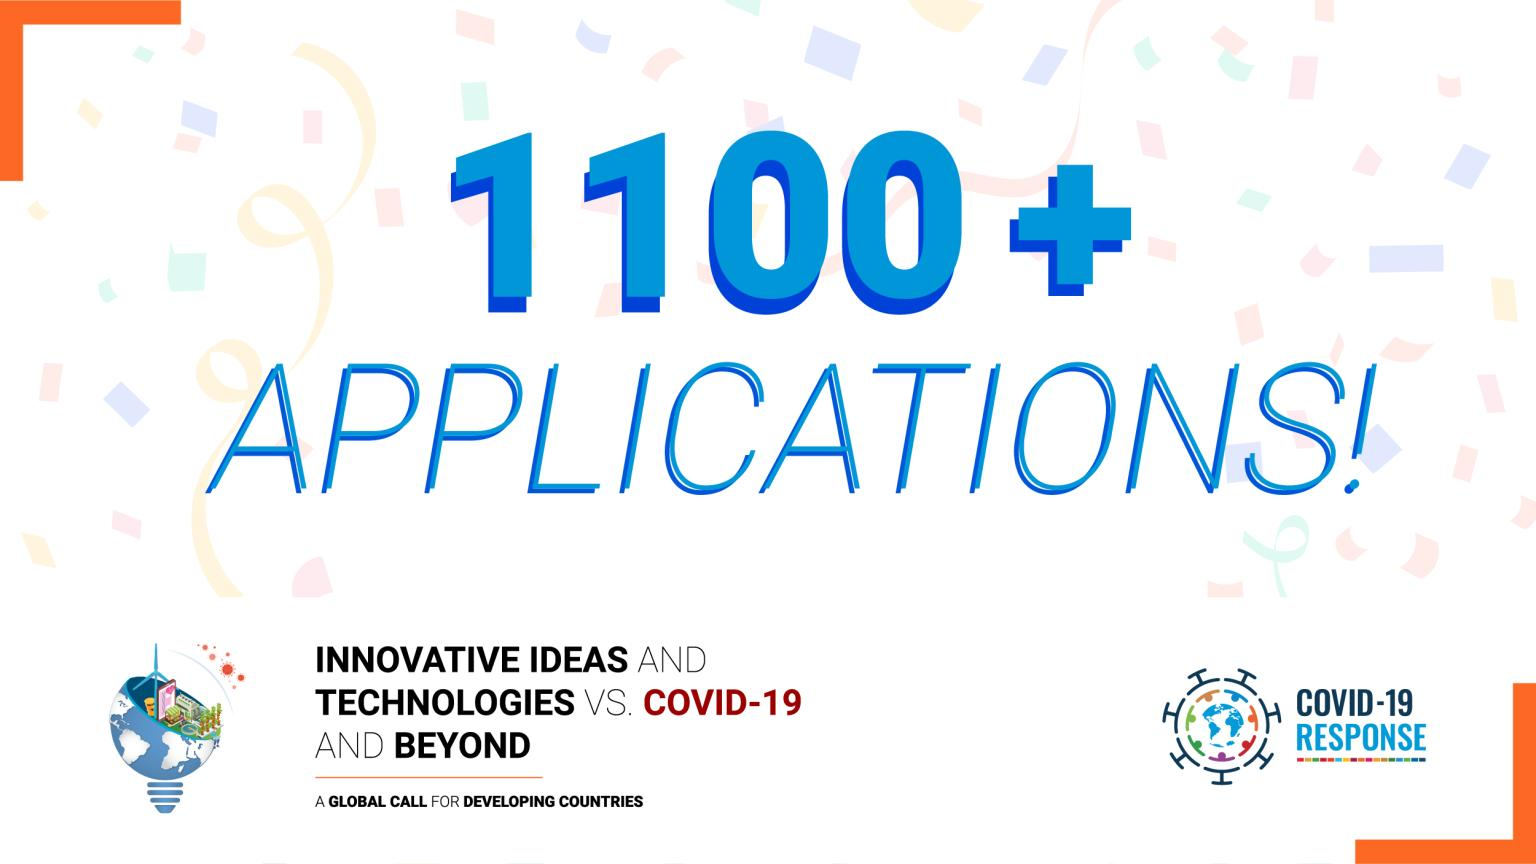 "Over 1,100 applications submitted to the UNIDO Global Call ""Innovative Ideas and Technologies vs. COVID-19 and beyond"""